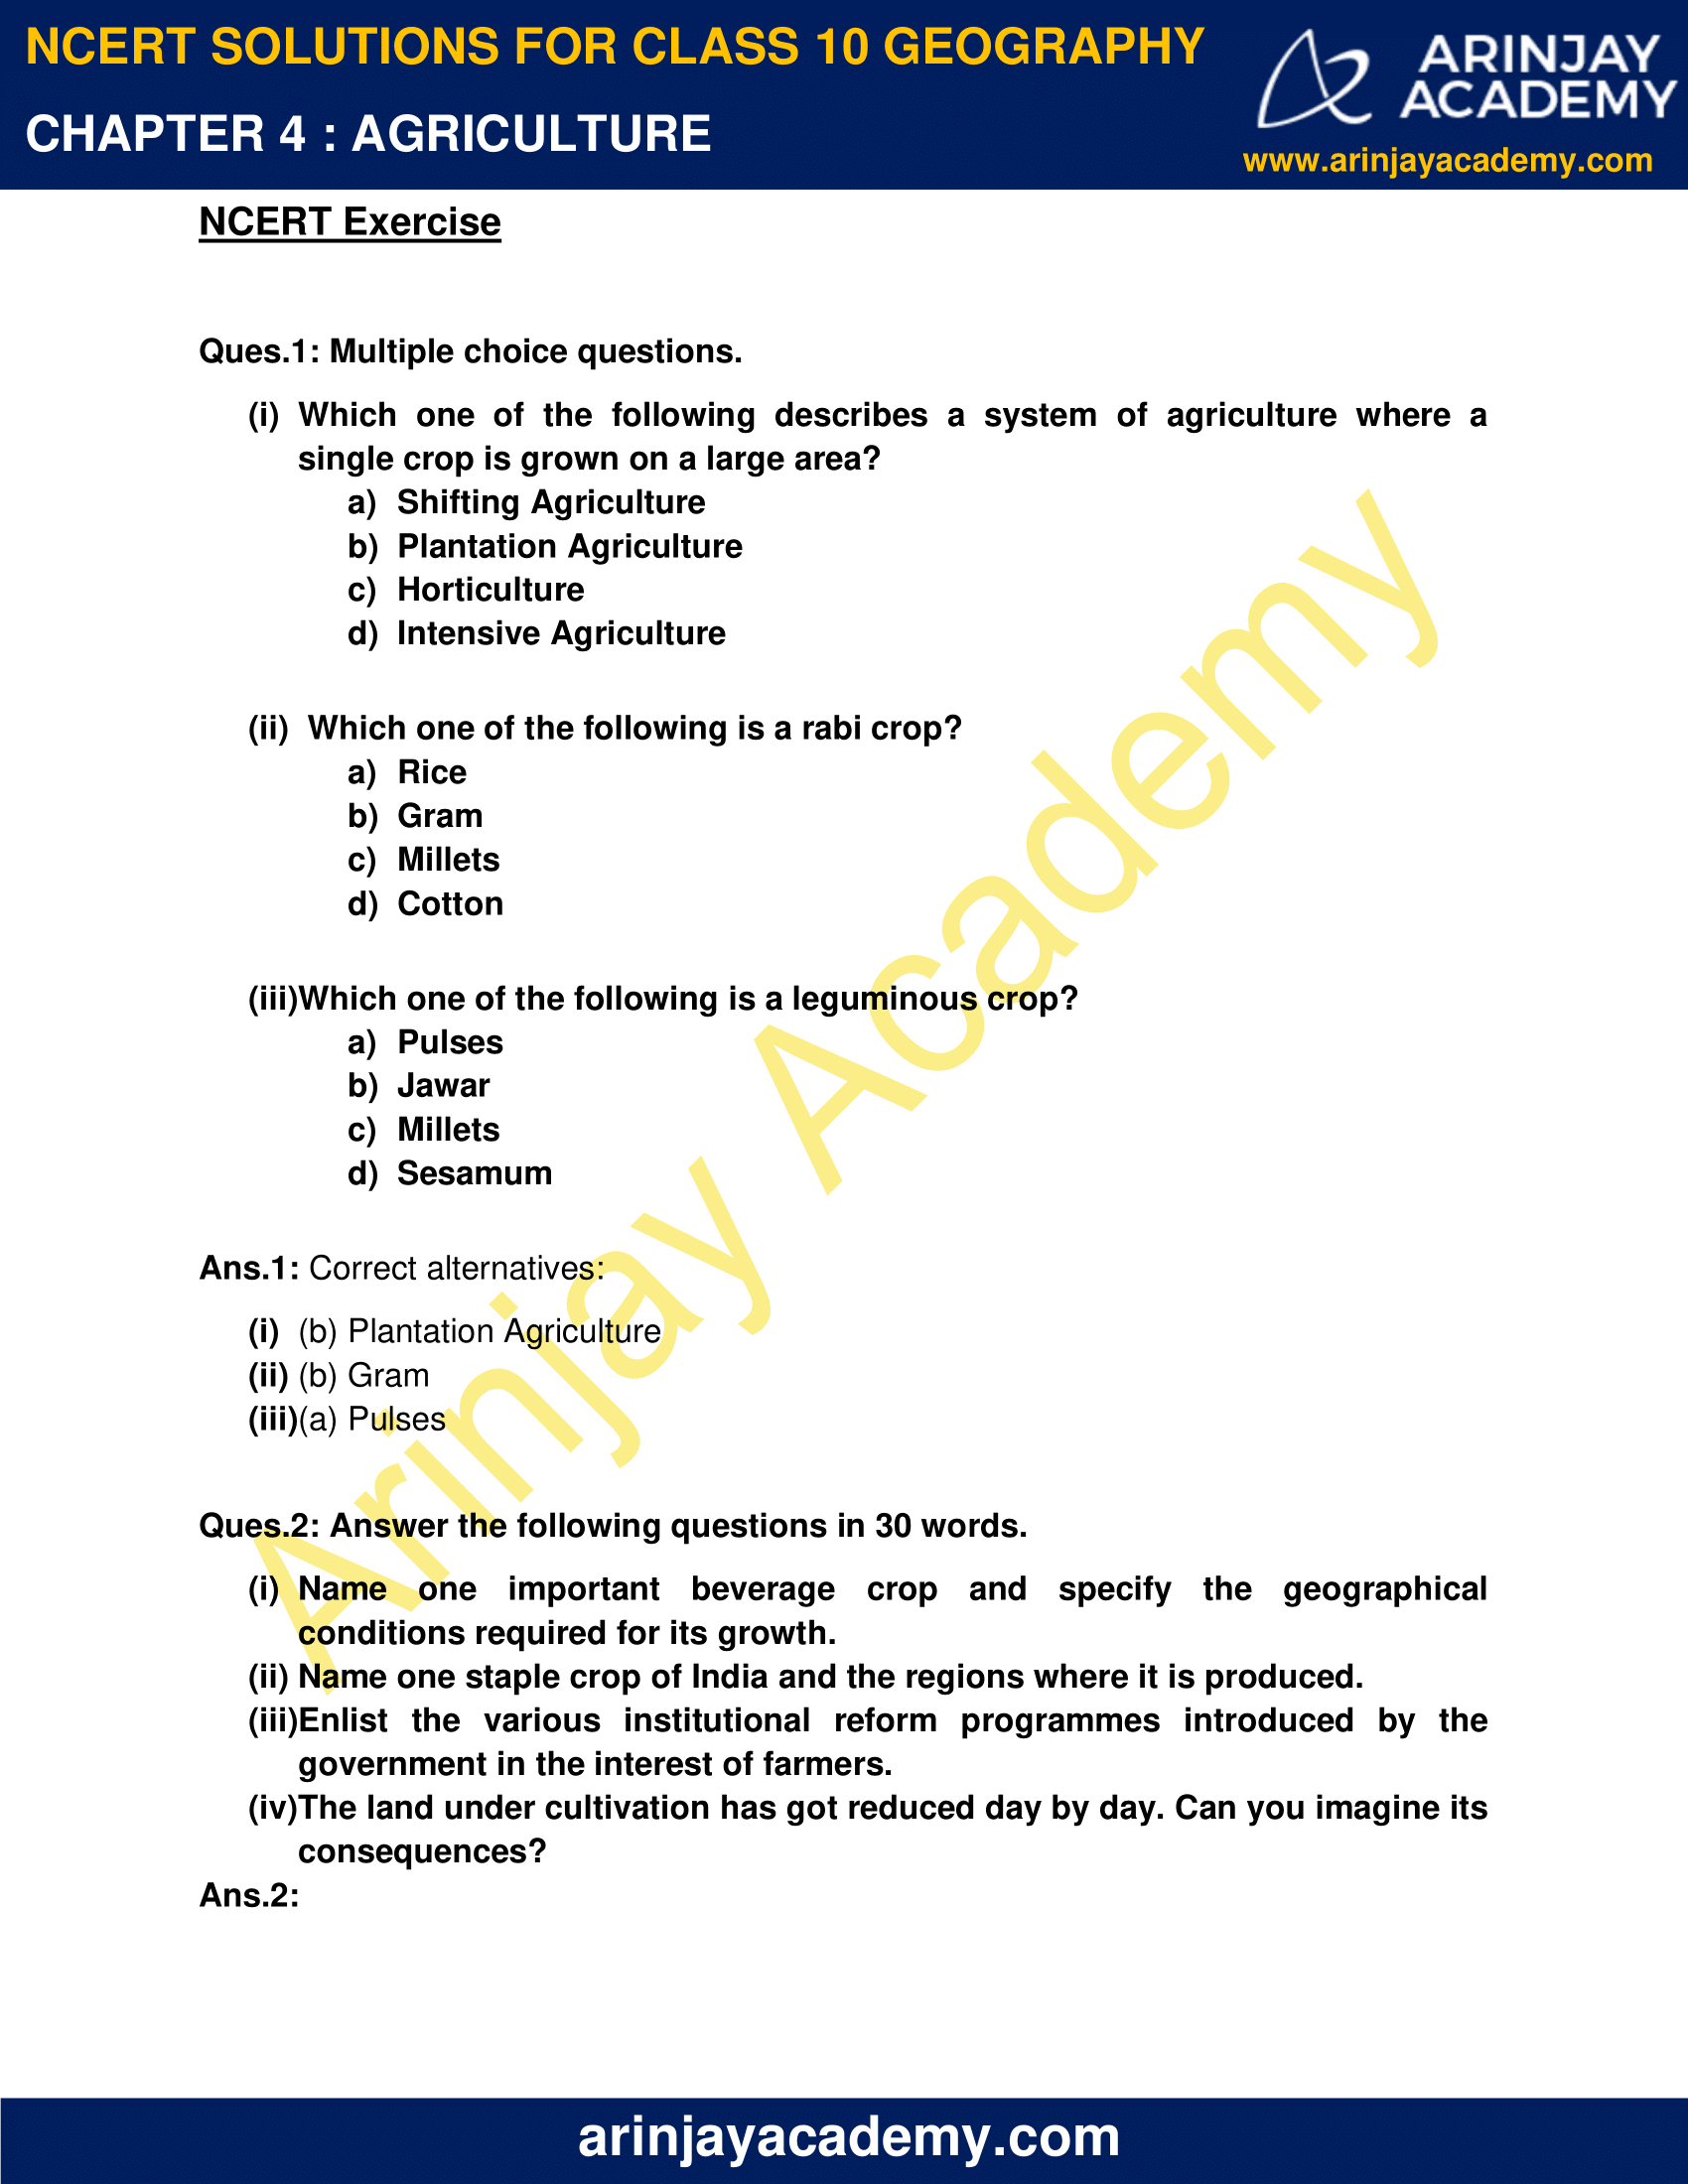 NCERT Solutions for Class 10 Geography Chapter 4 image 1